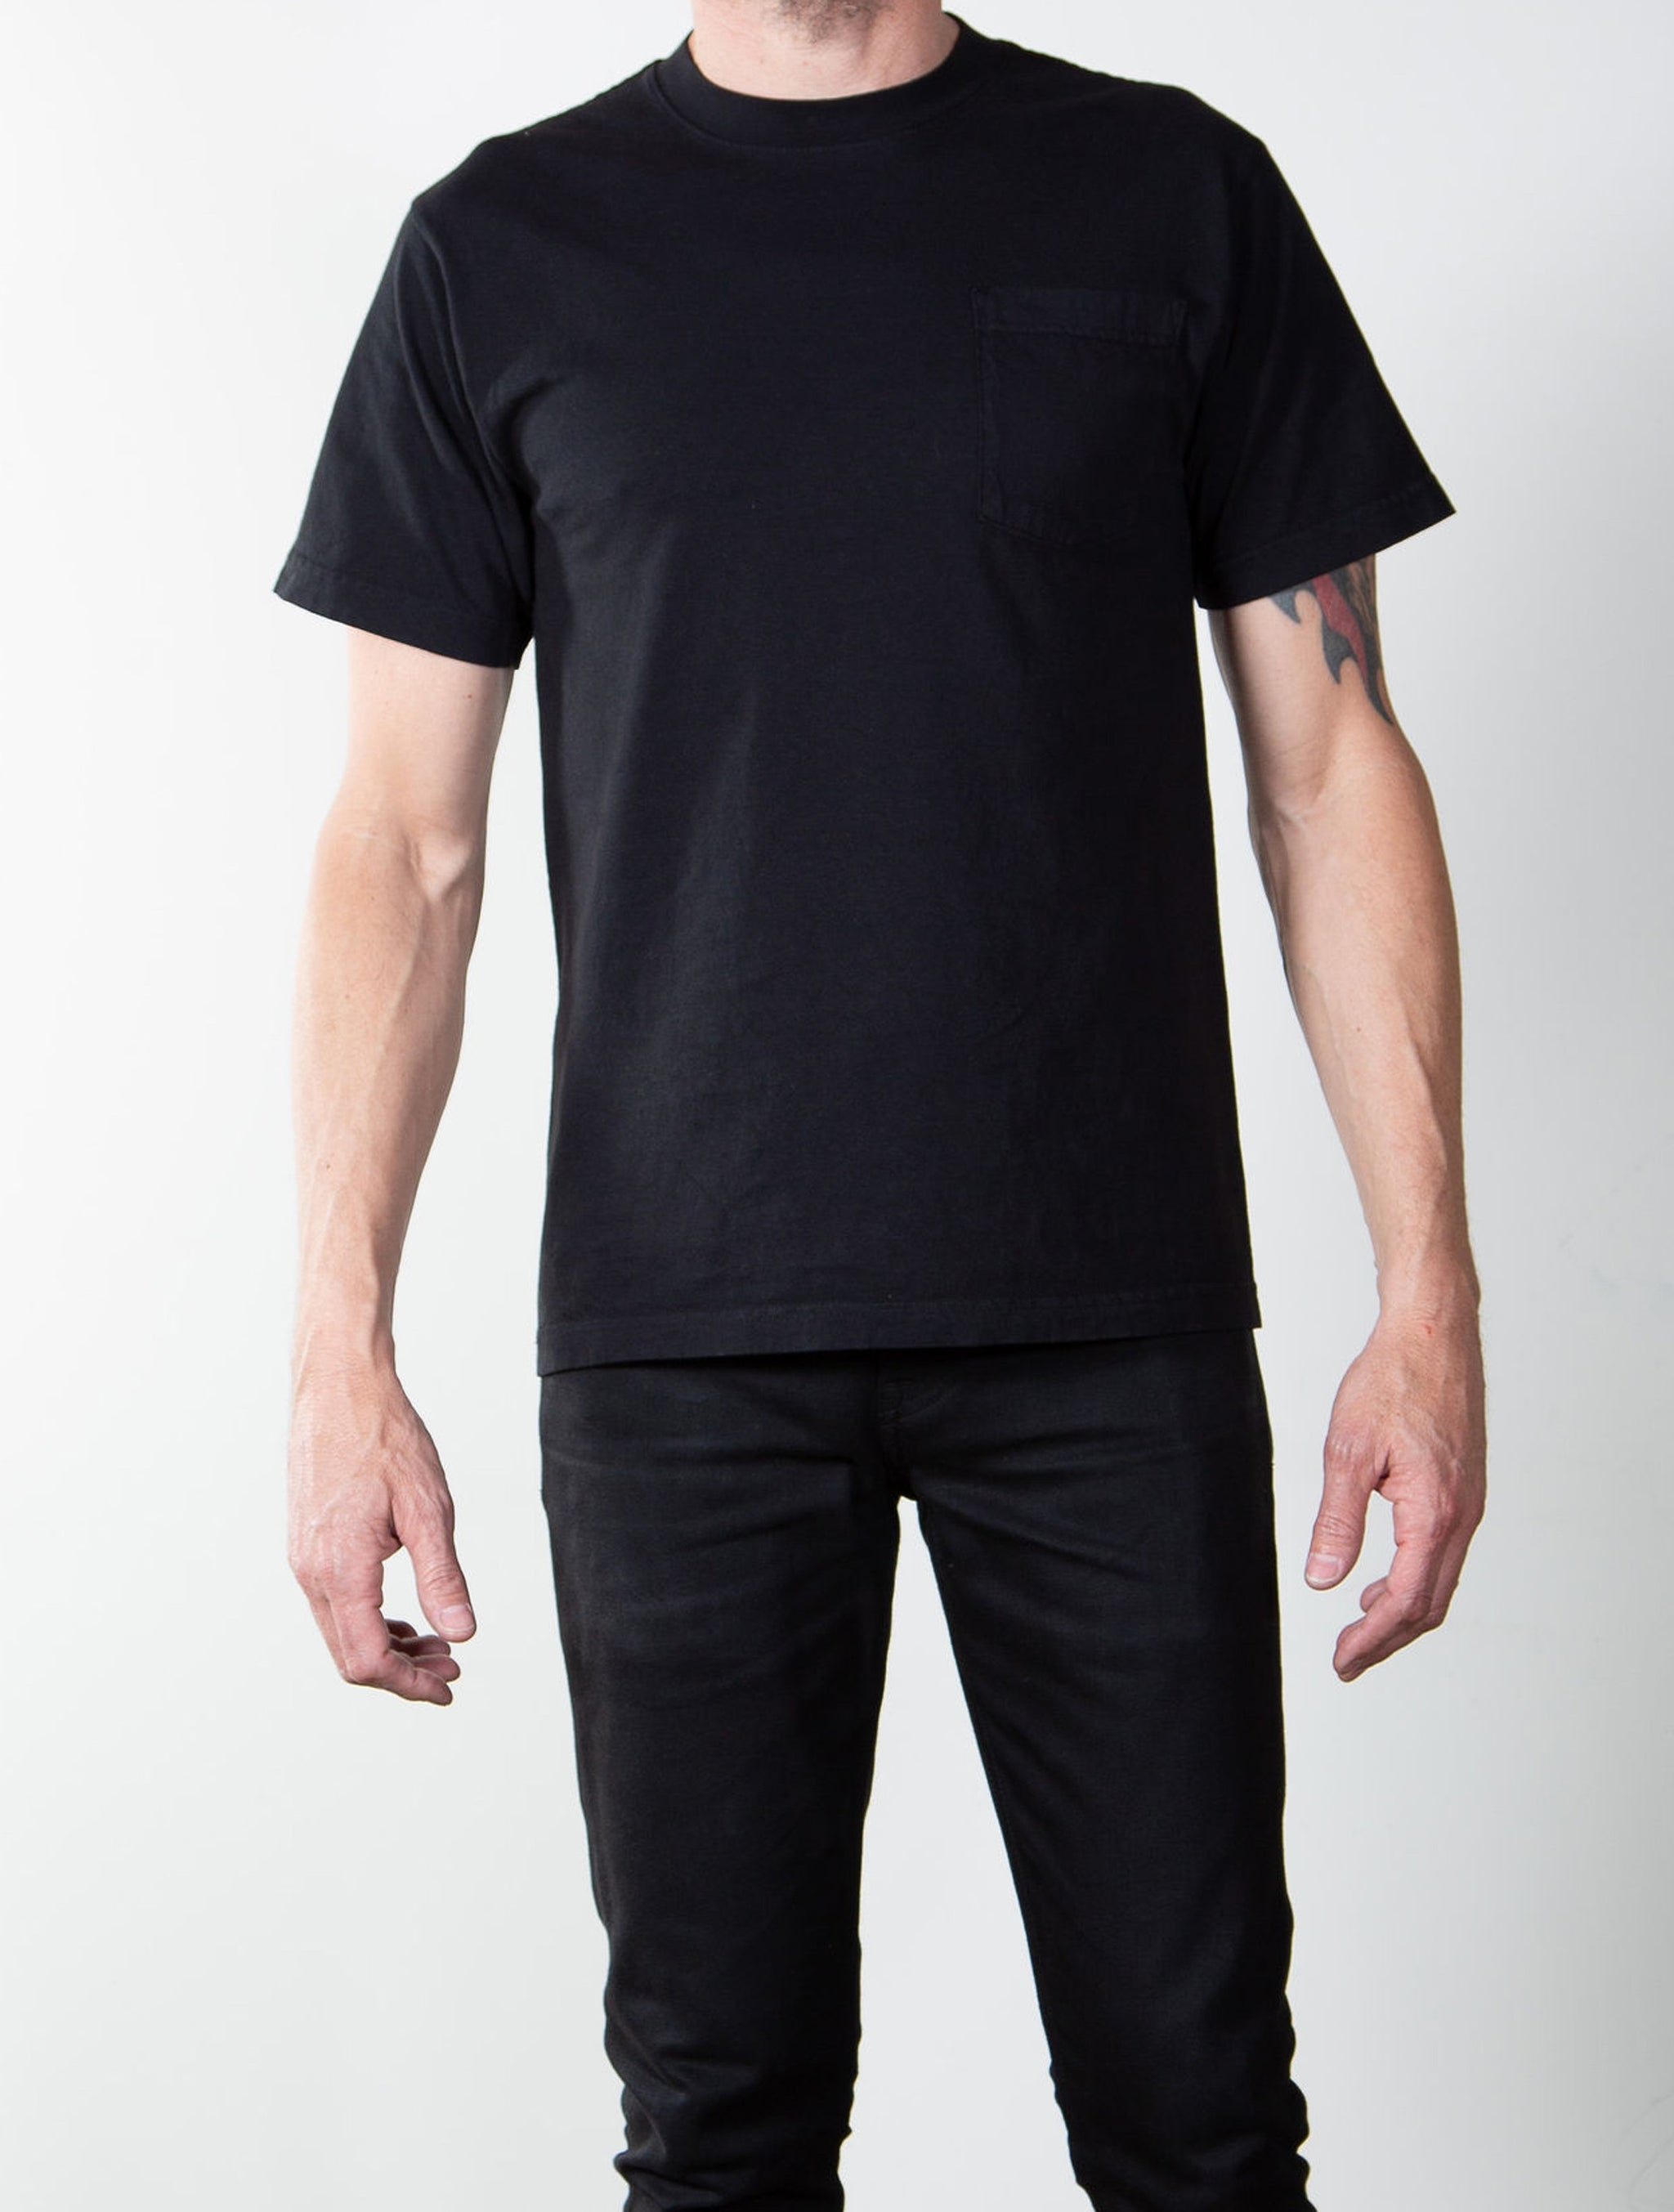 6.5oz Heavyweight 'Glory Days' Tubular Pocket T-Shirt Single Pack